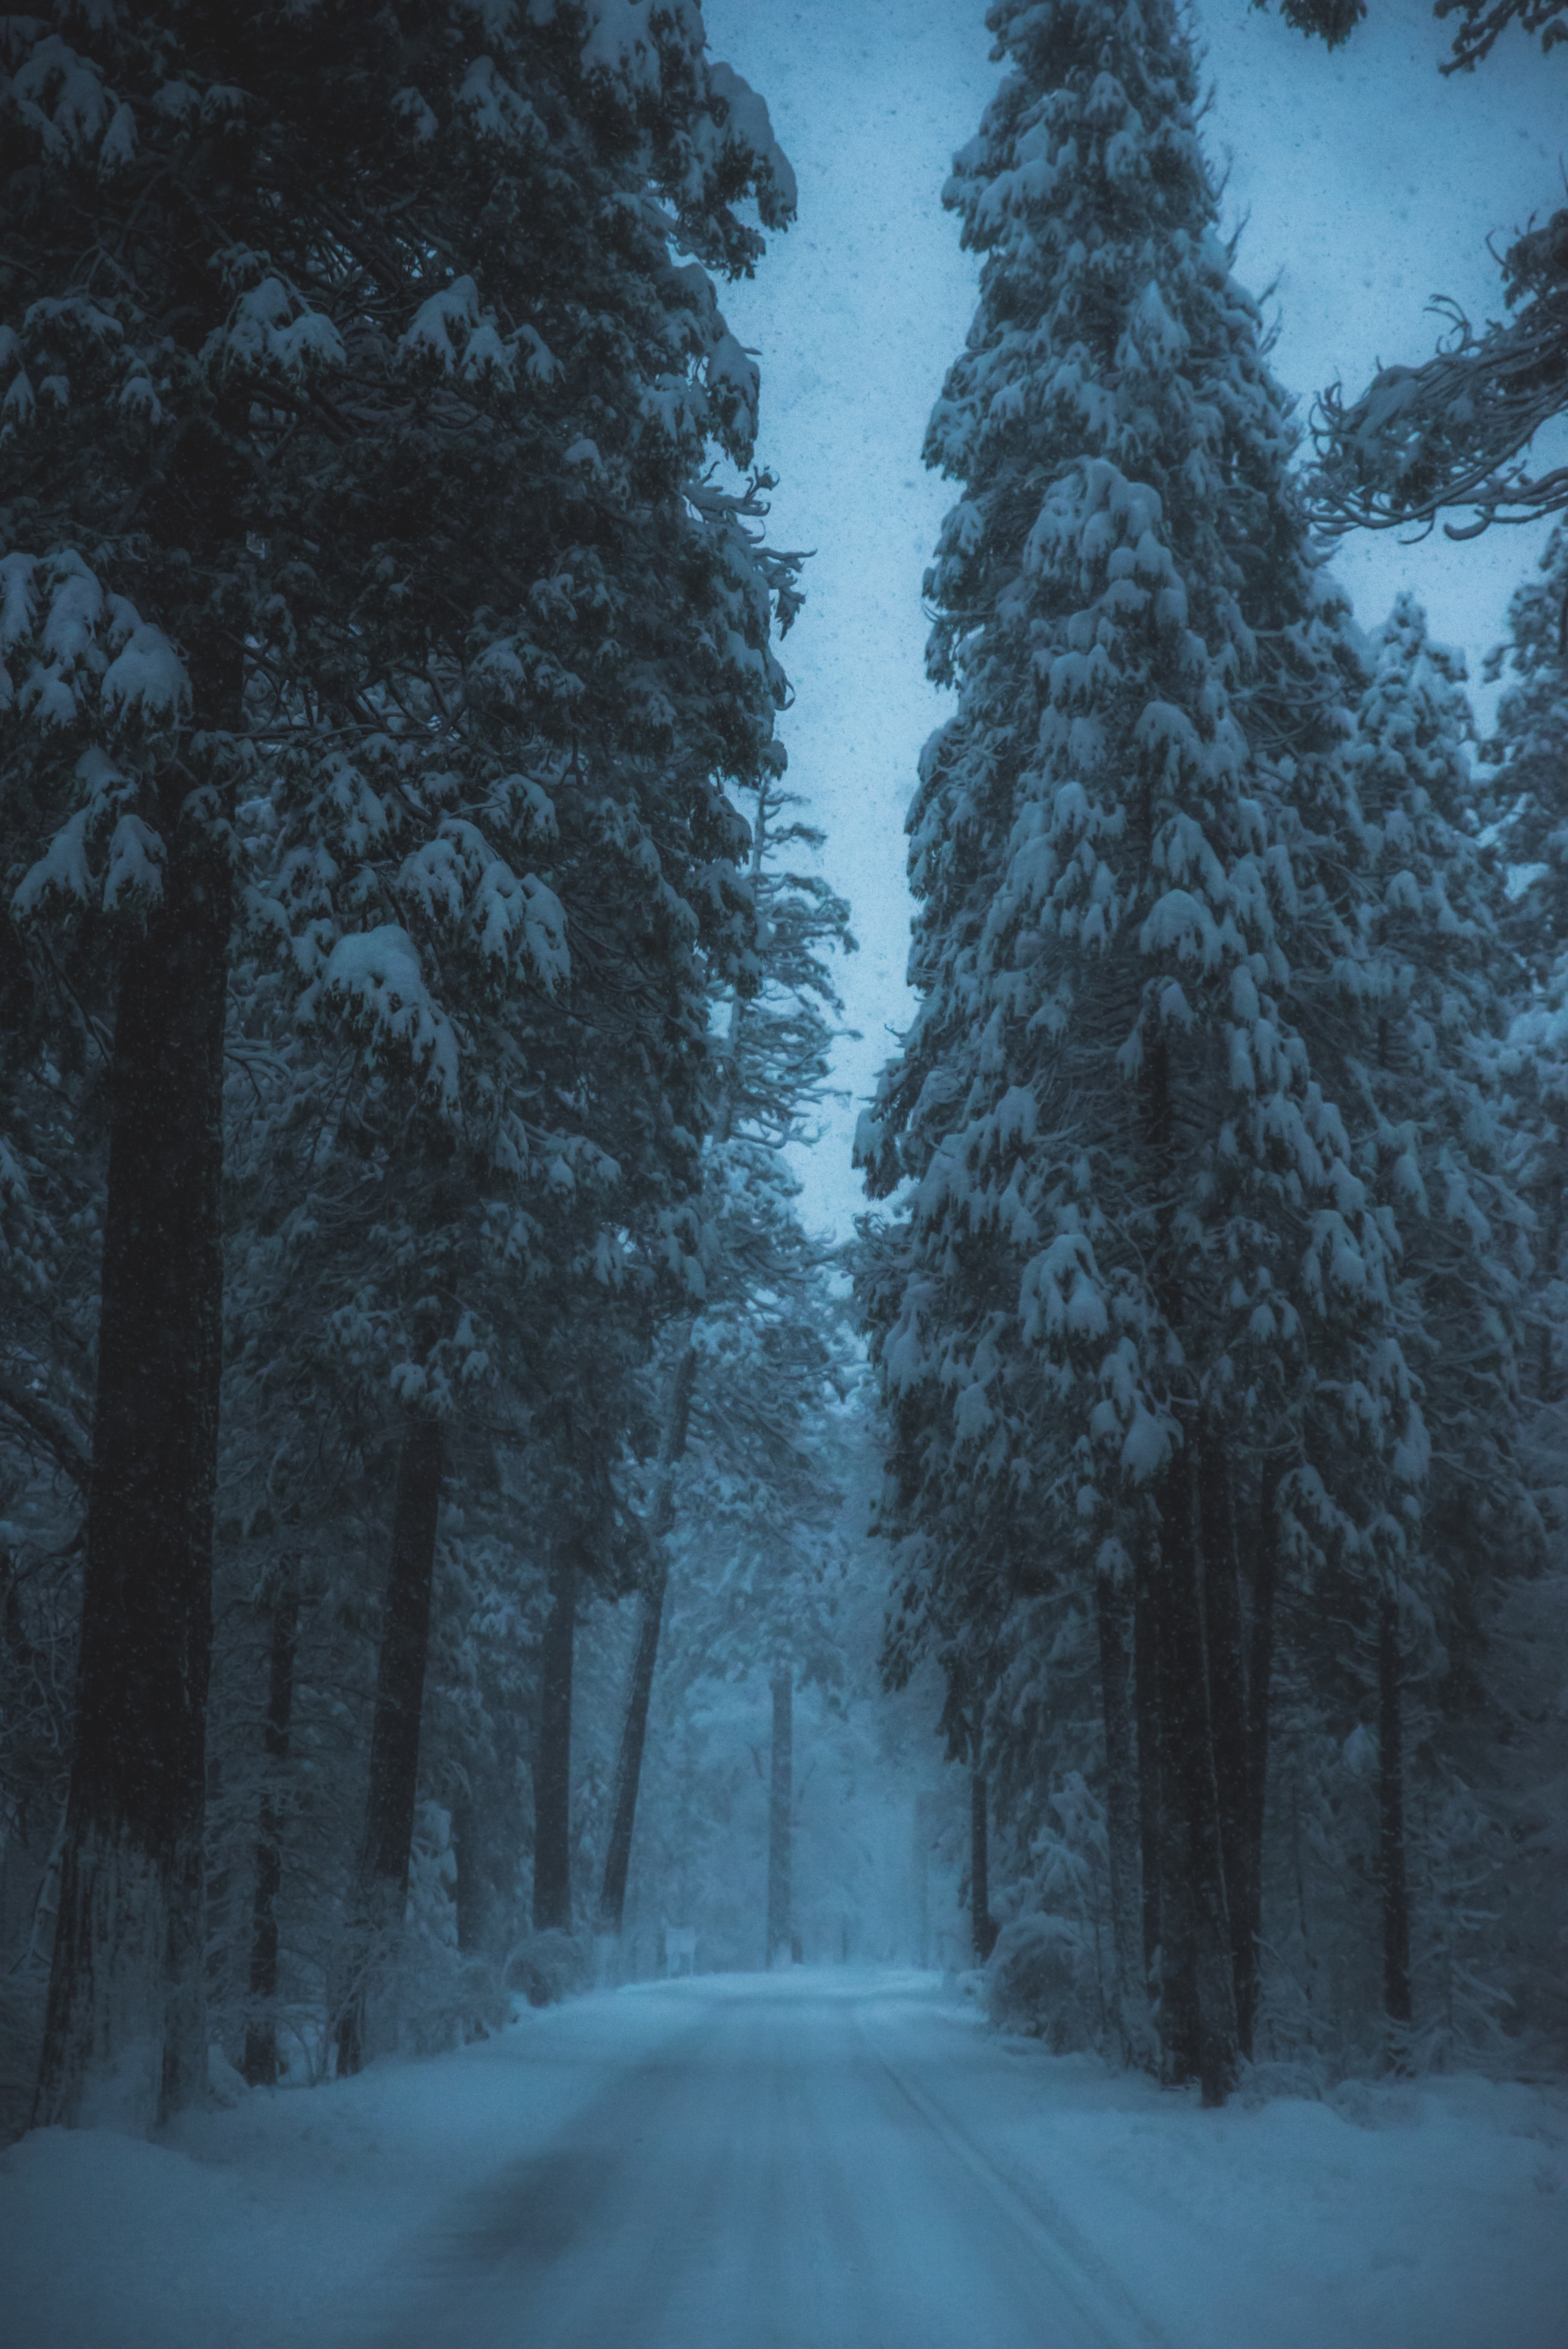 road surrounded by snow covered trees